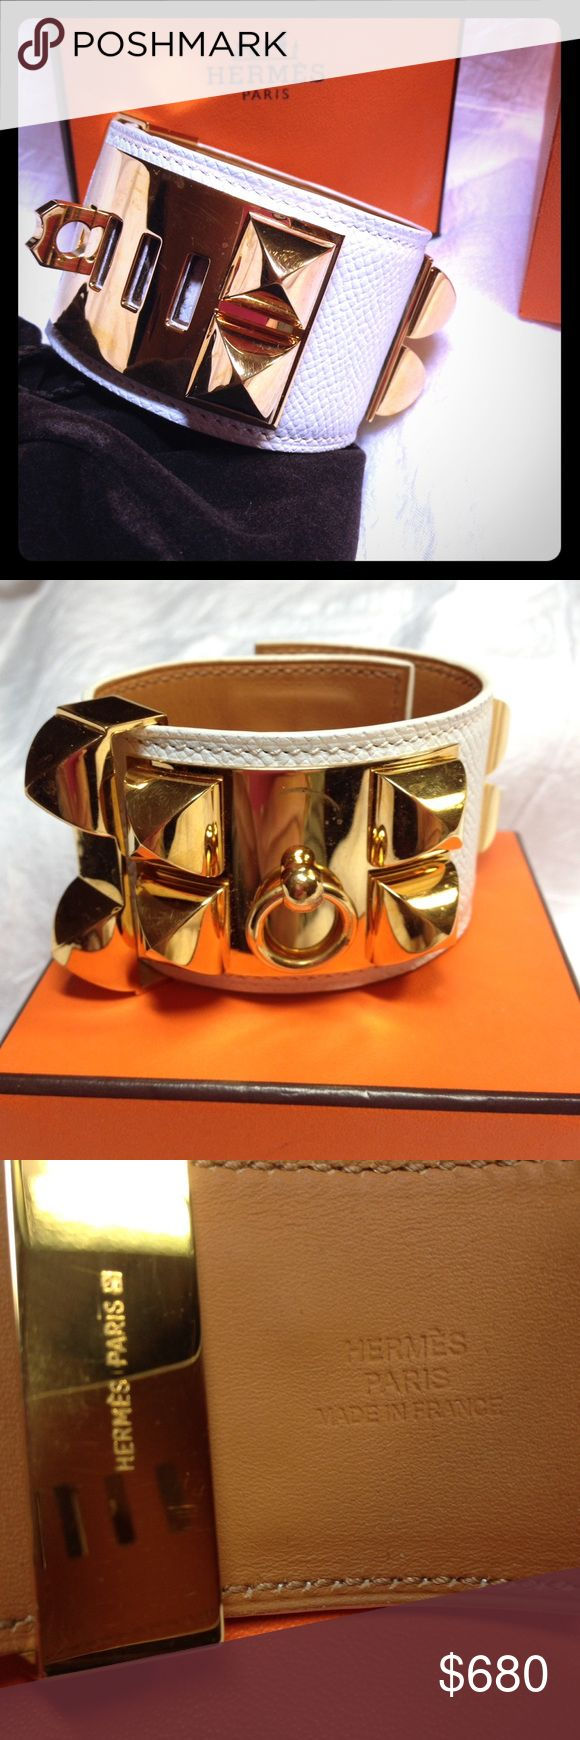 Hermes CDC Kelly Dog Bracelet White/Gold I bought this from the Hermes online site and used 2-3 times. There are tiny scratches from use, the leather is Epsom which is stiff and matte. Gold plated hardware. Includes box and cloth bag. Hermes Accessories